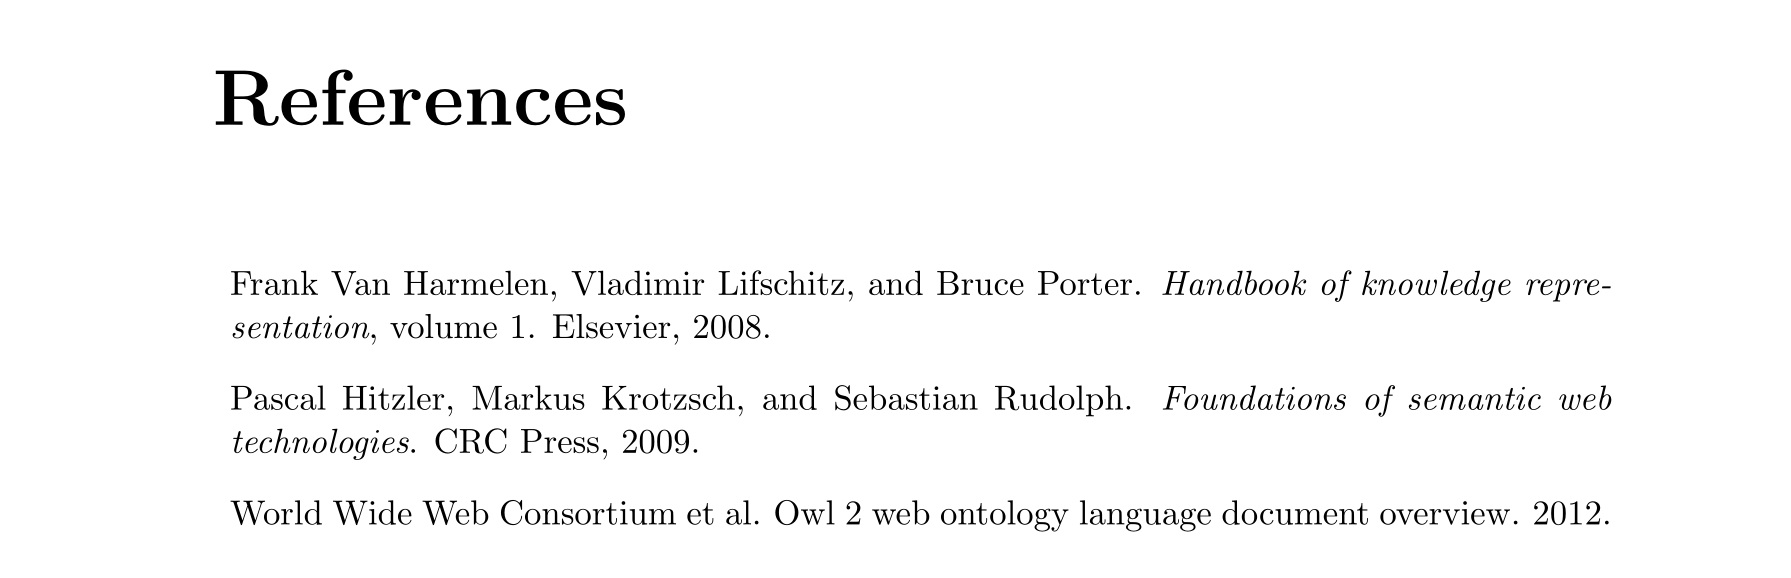 ordering references in as they appear in the document latex